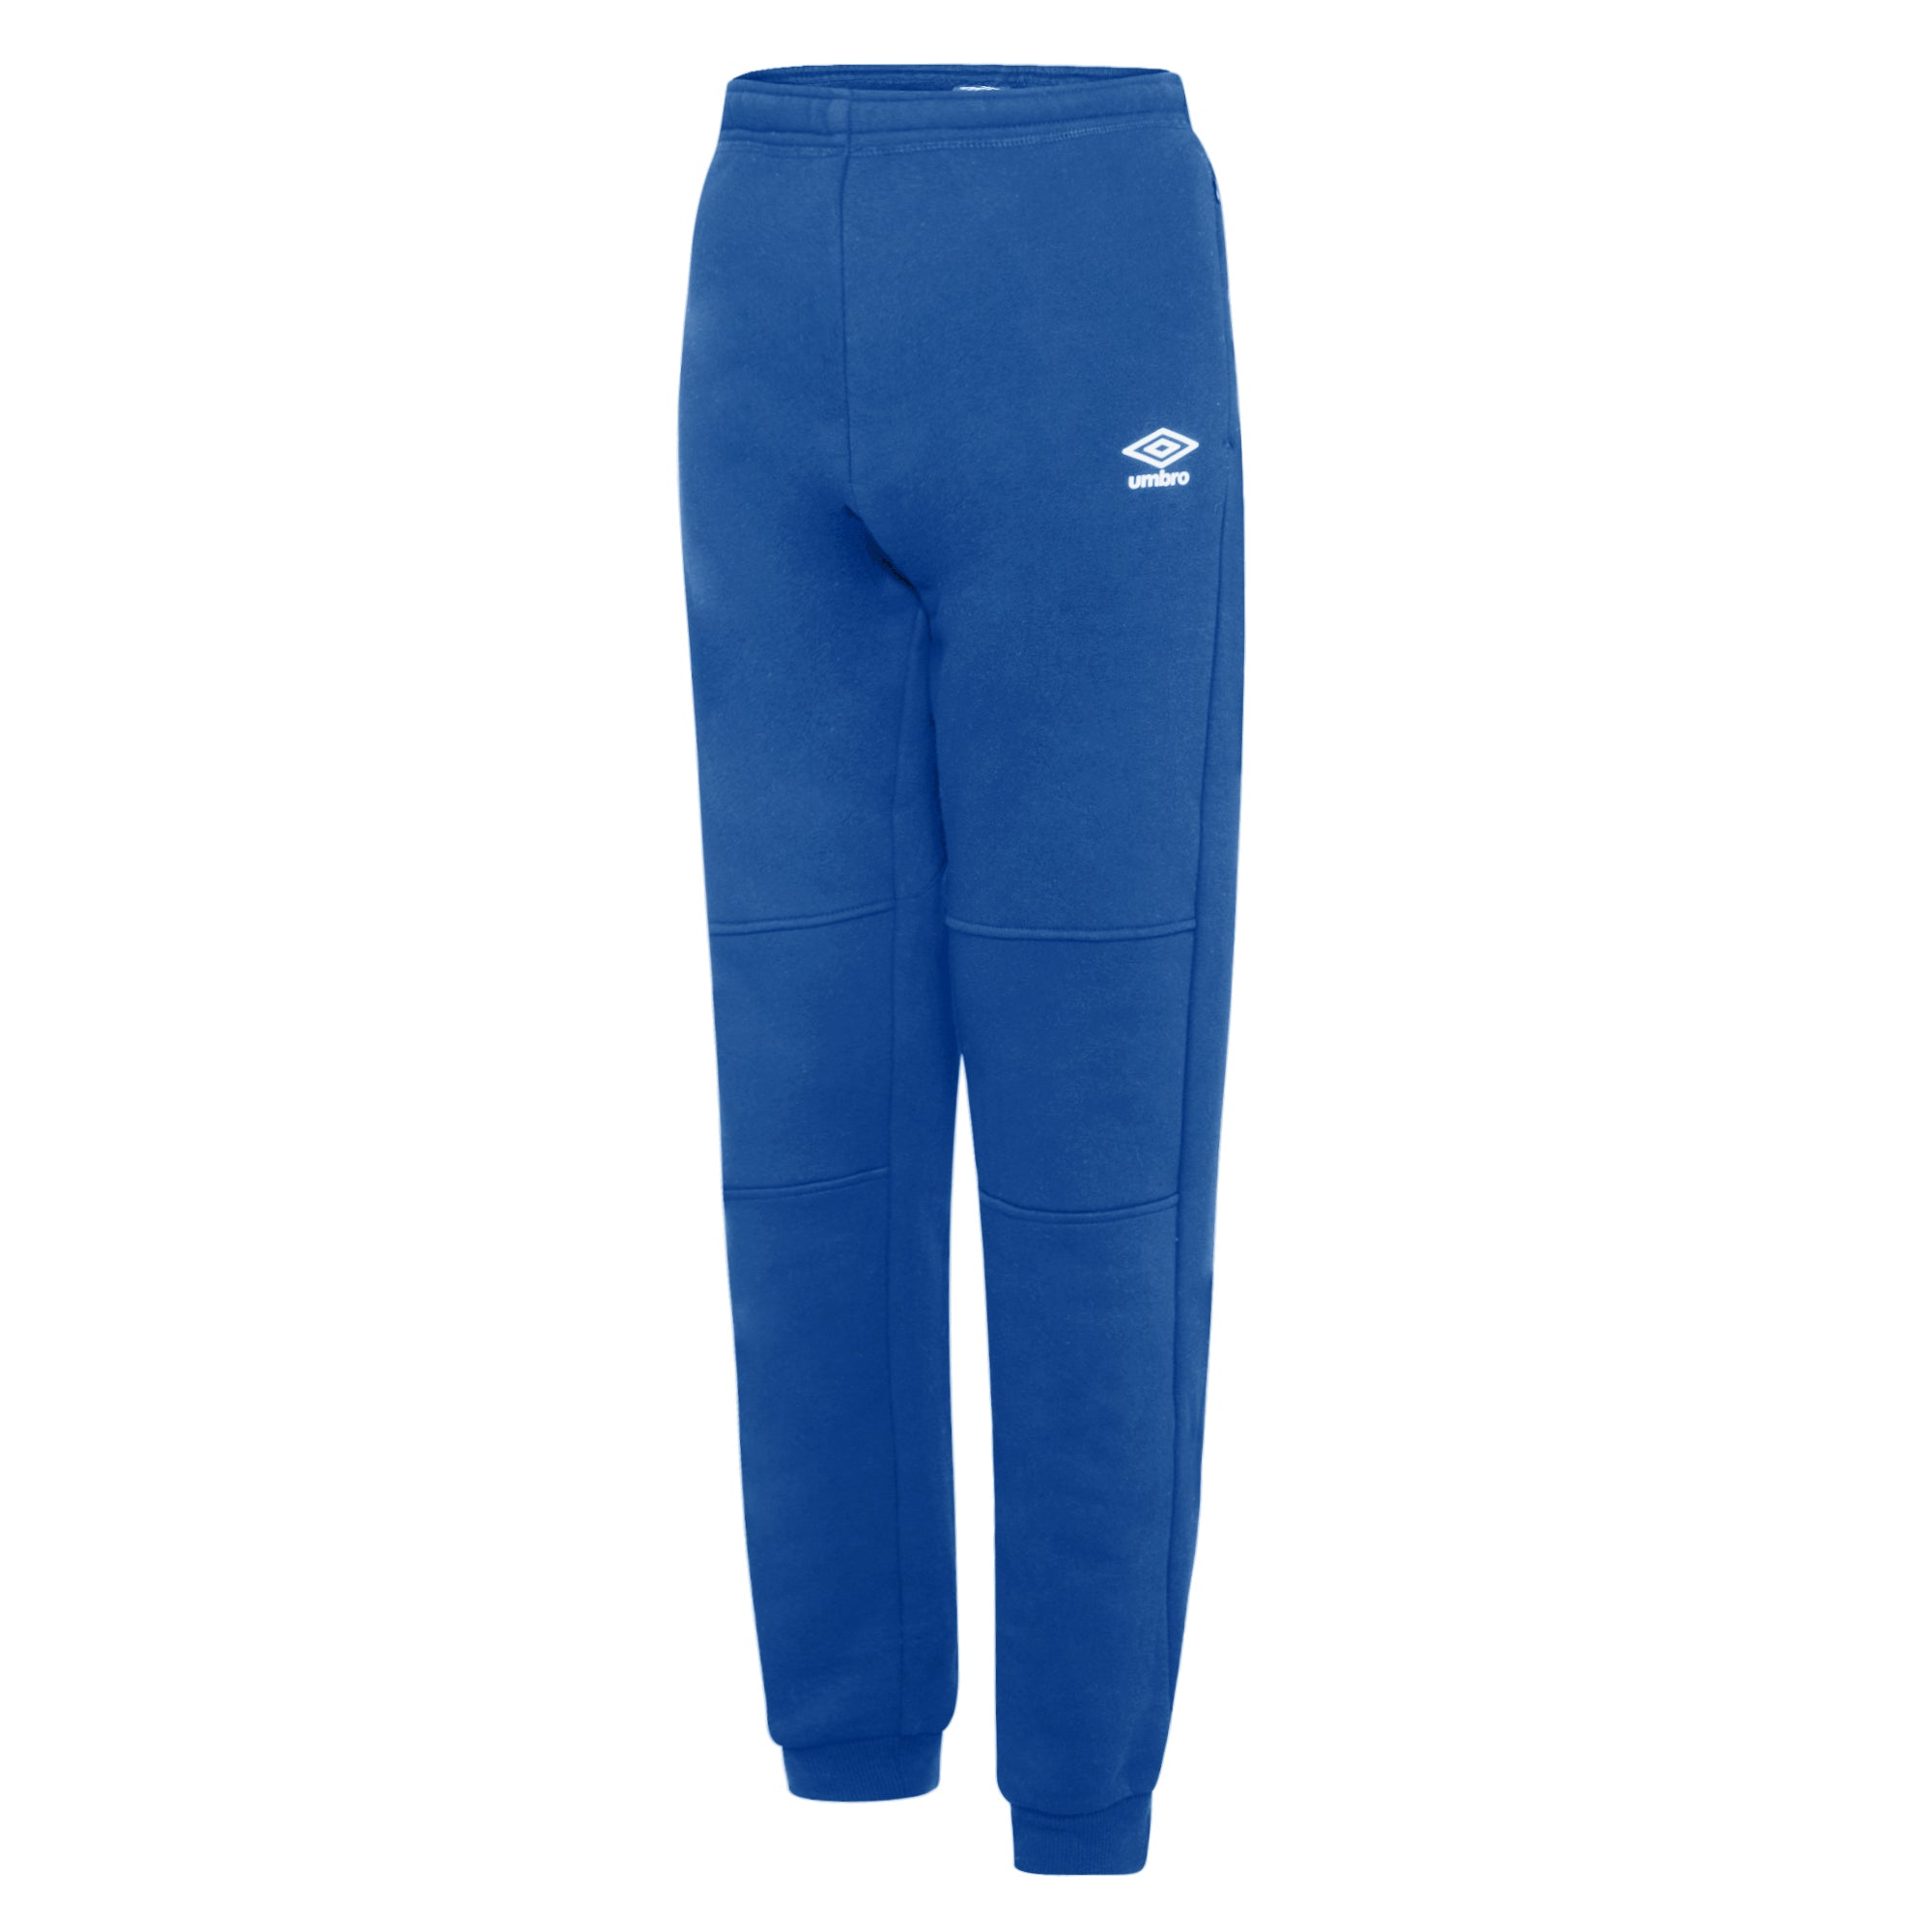 Umbro Club Leisure Women's Jogpants - TW Royal/White